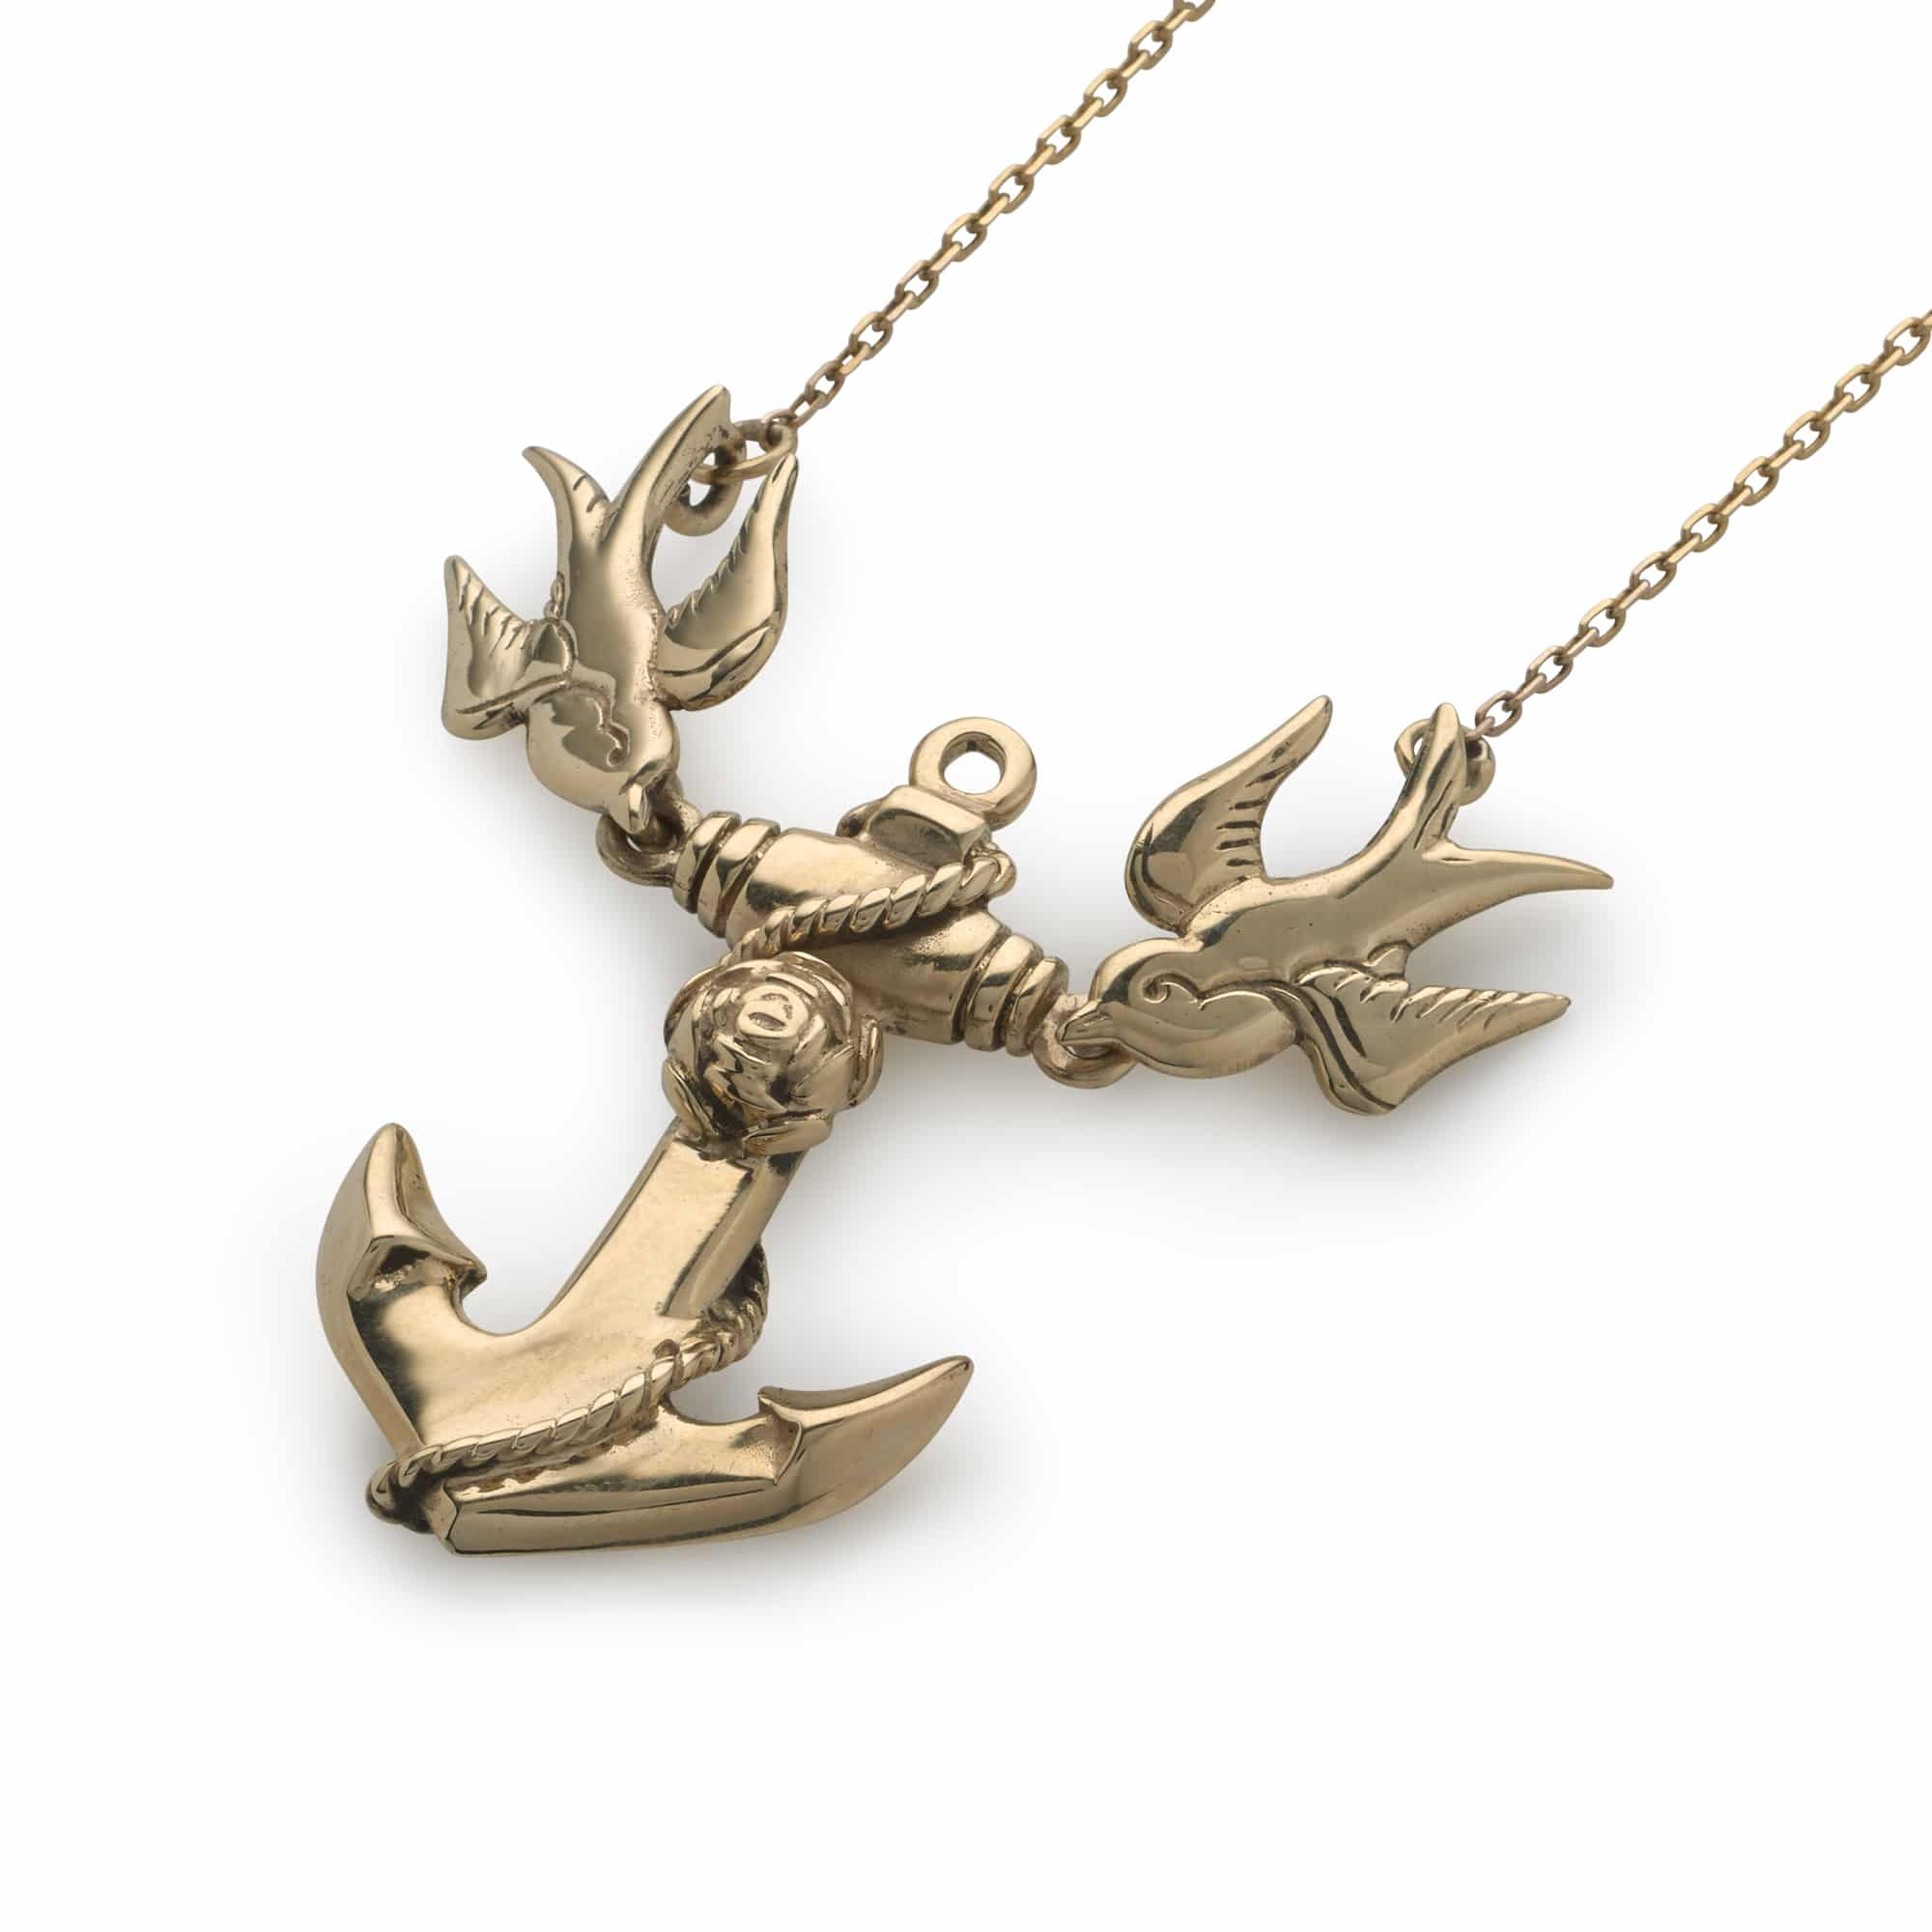 products laha image necklace anchor dcbc designs ole